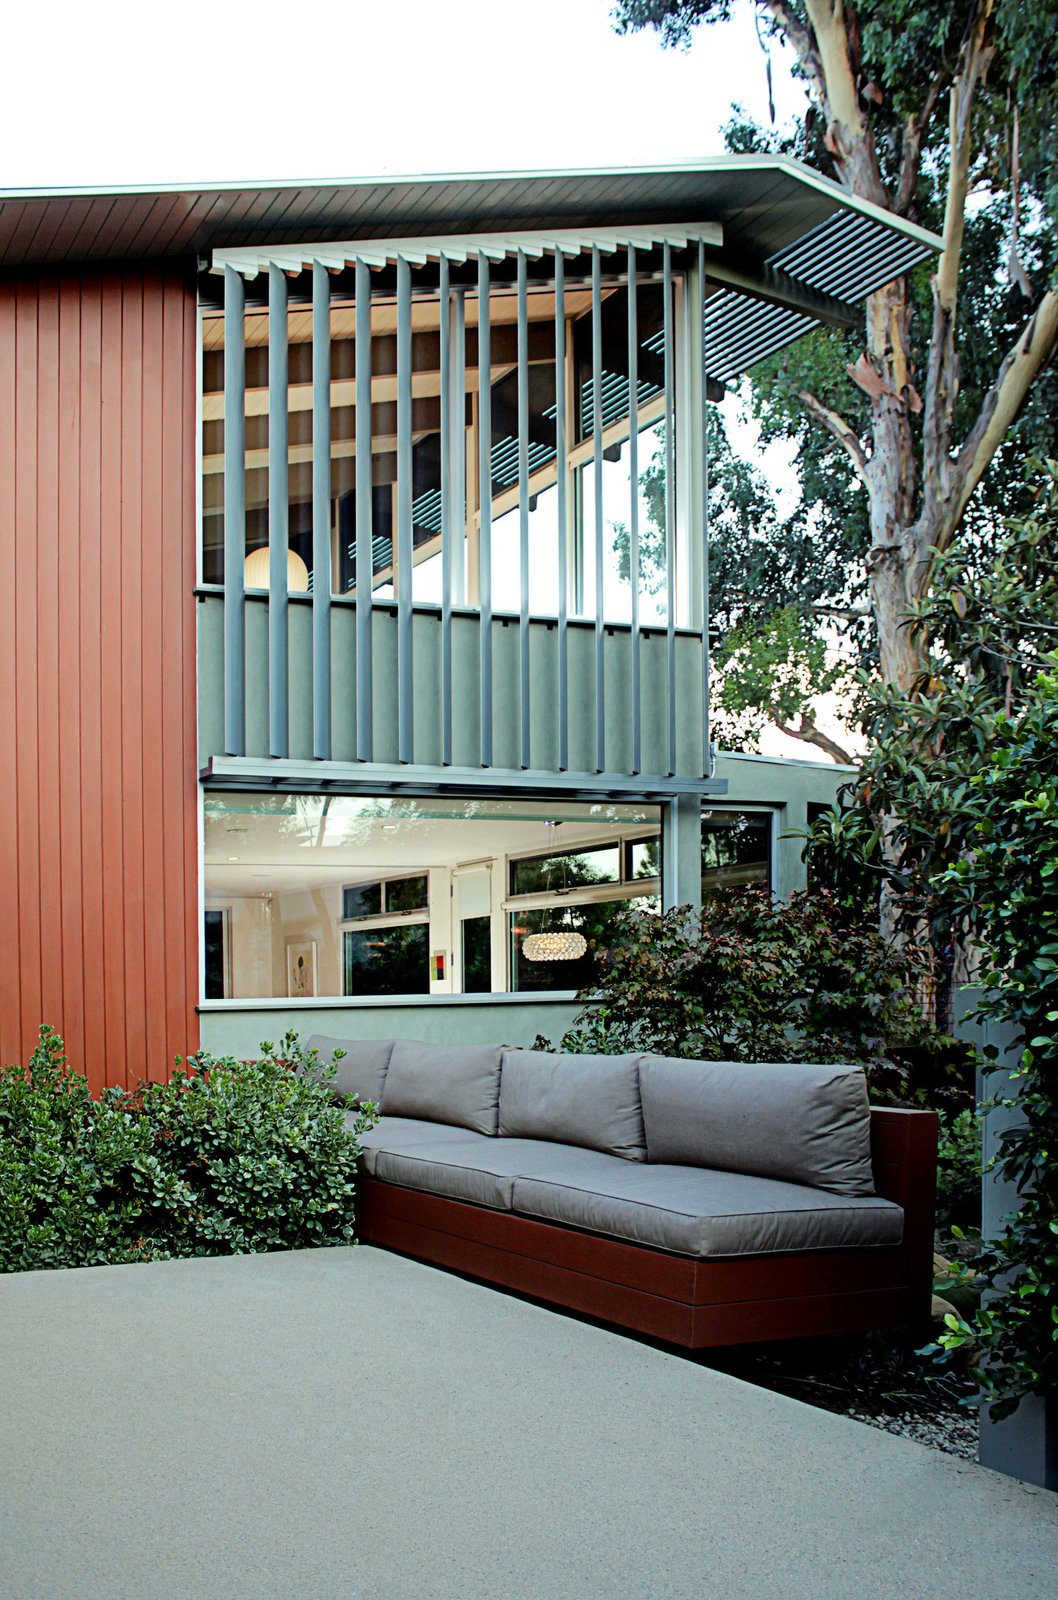 The second-story addition has a view of the Santa Monica Bay. Electronically controlled aluminum slats by LouverTech filter street noise and sunlight. Midcentury Homes by Dwell